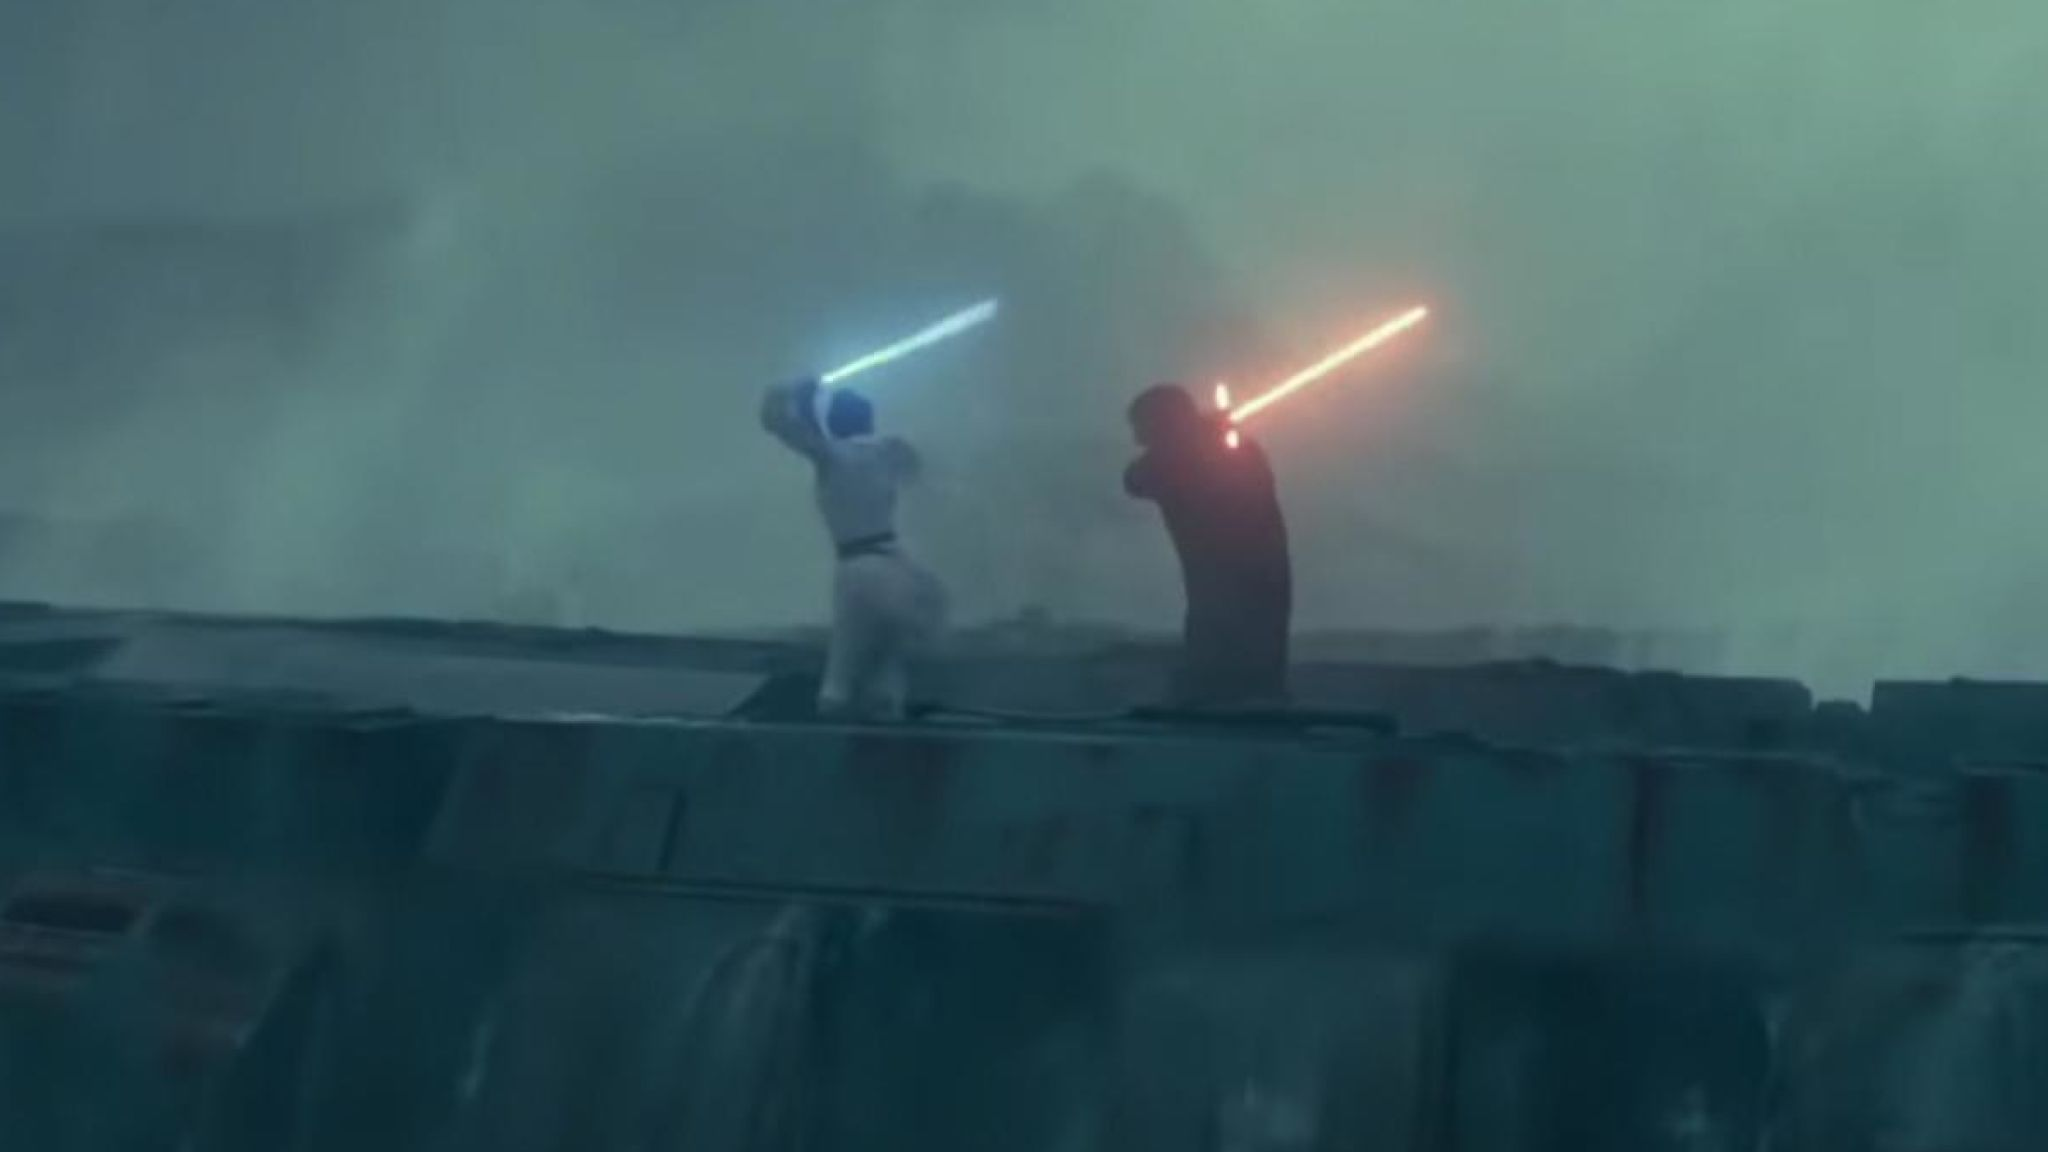 Rey and Kylo Ren face-off in a lightsaber duel